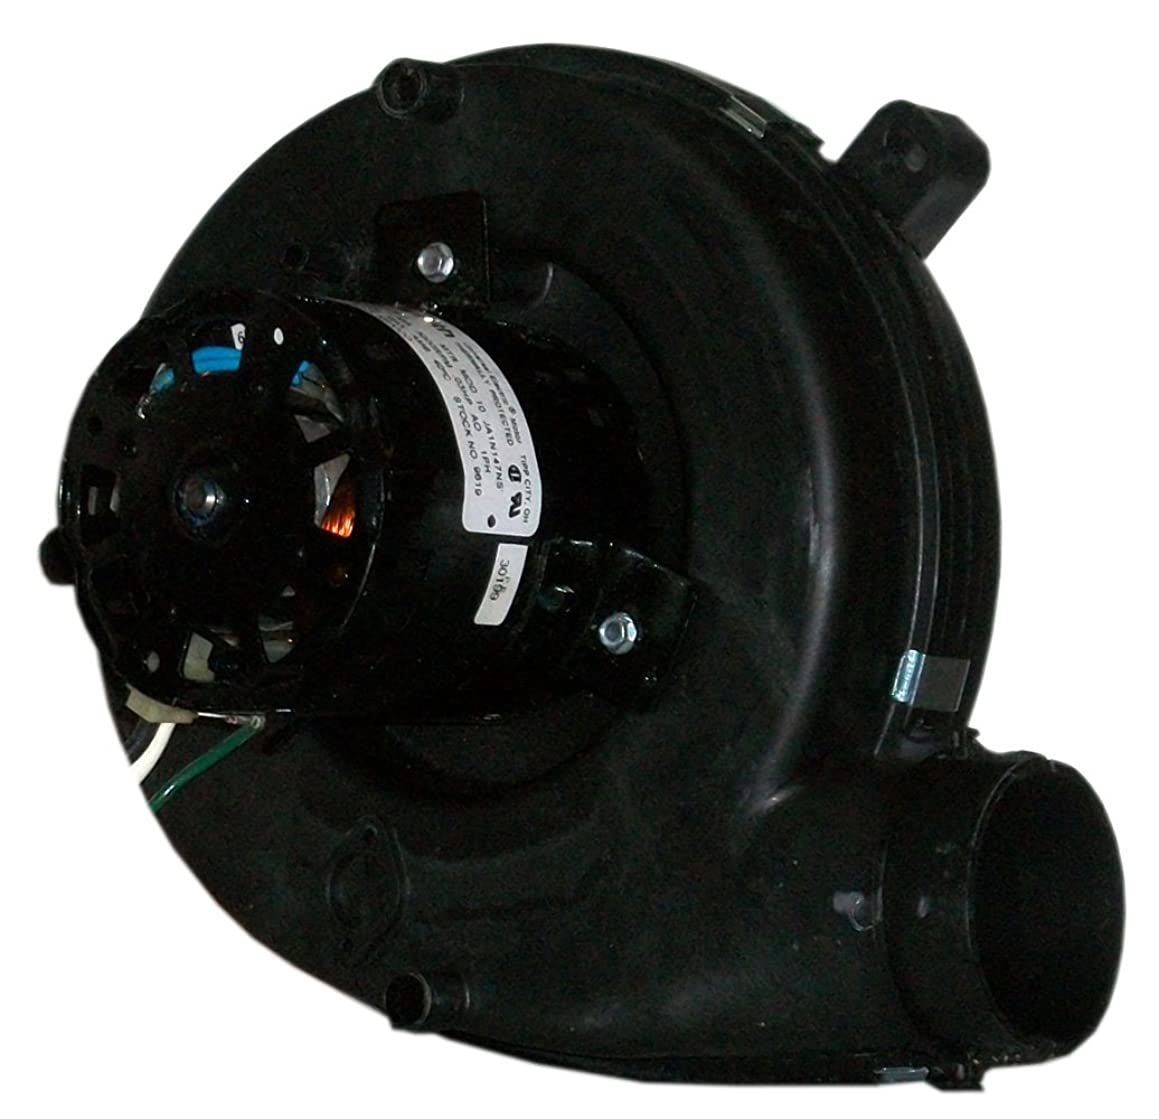 A.O. Smith 9620 90 CFM, 1/20 hp, 3200 RPM, 115 Volts, Shaded Pole, 1 Speed Centrifugal Blower